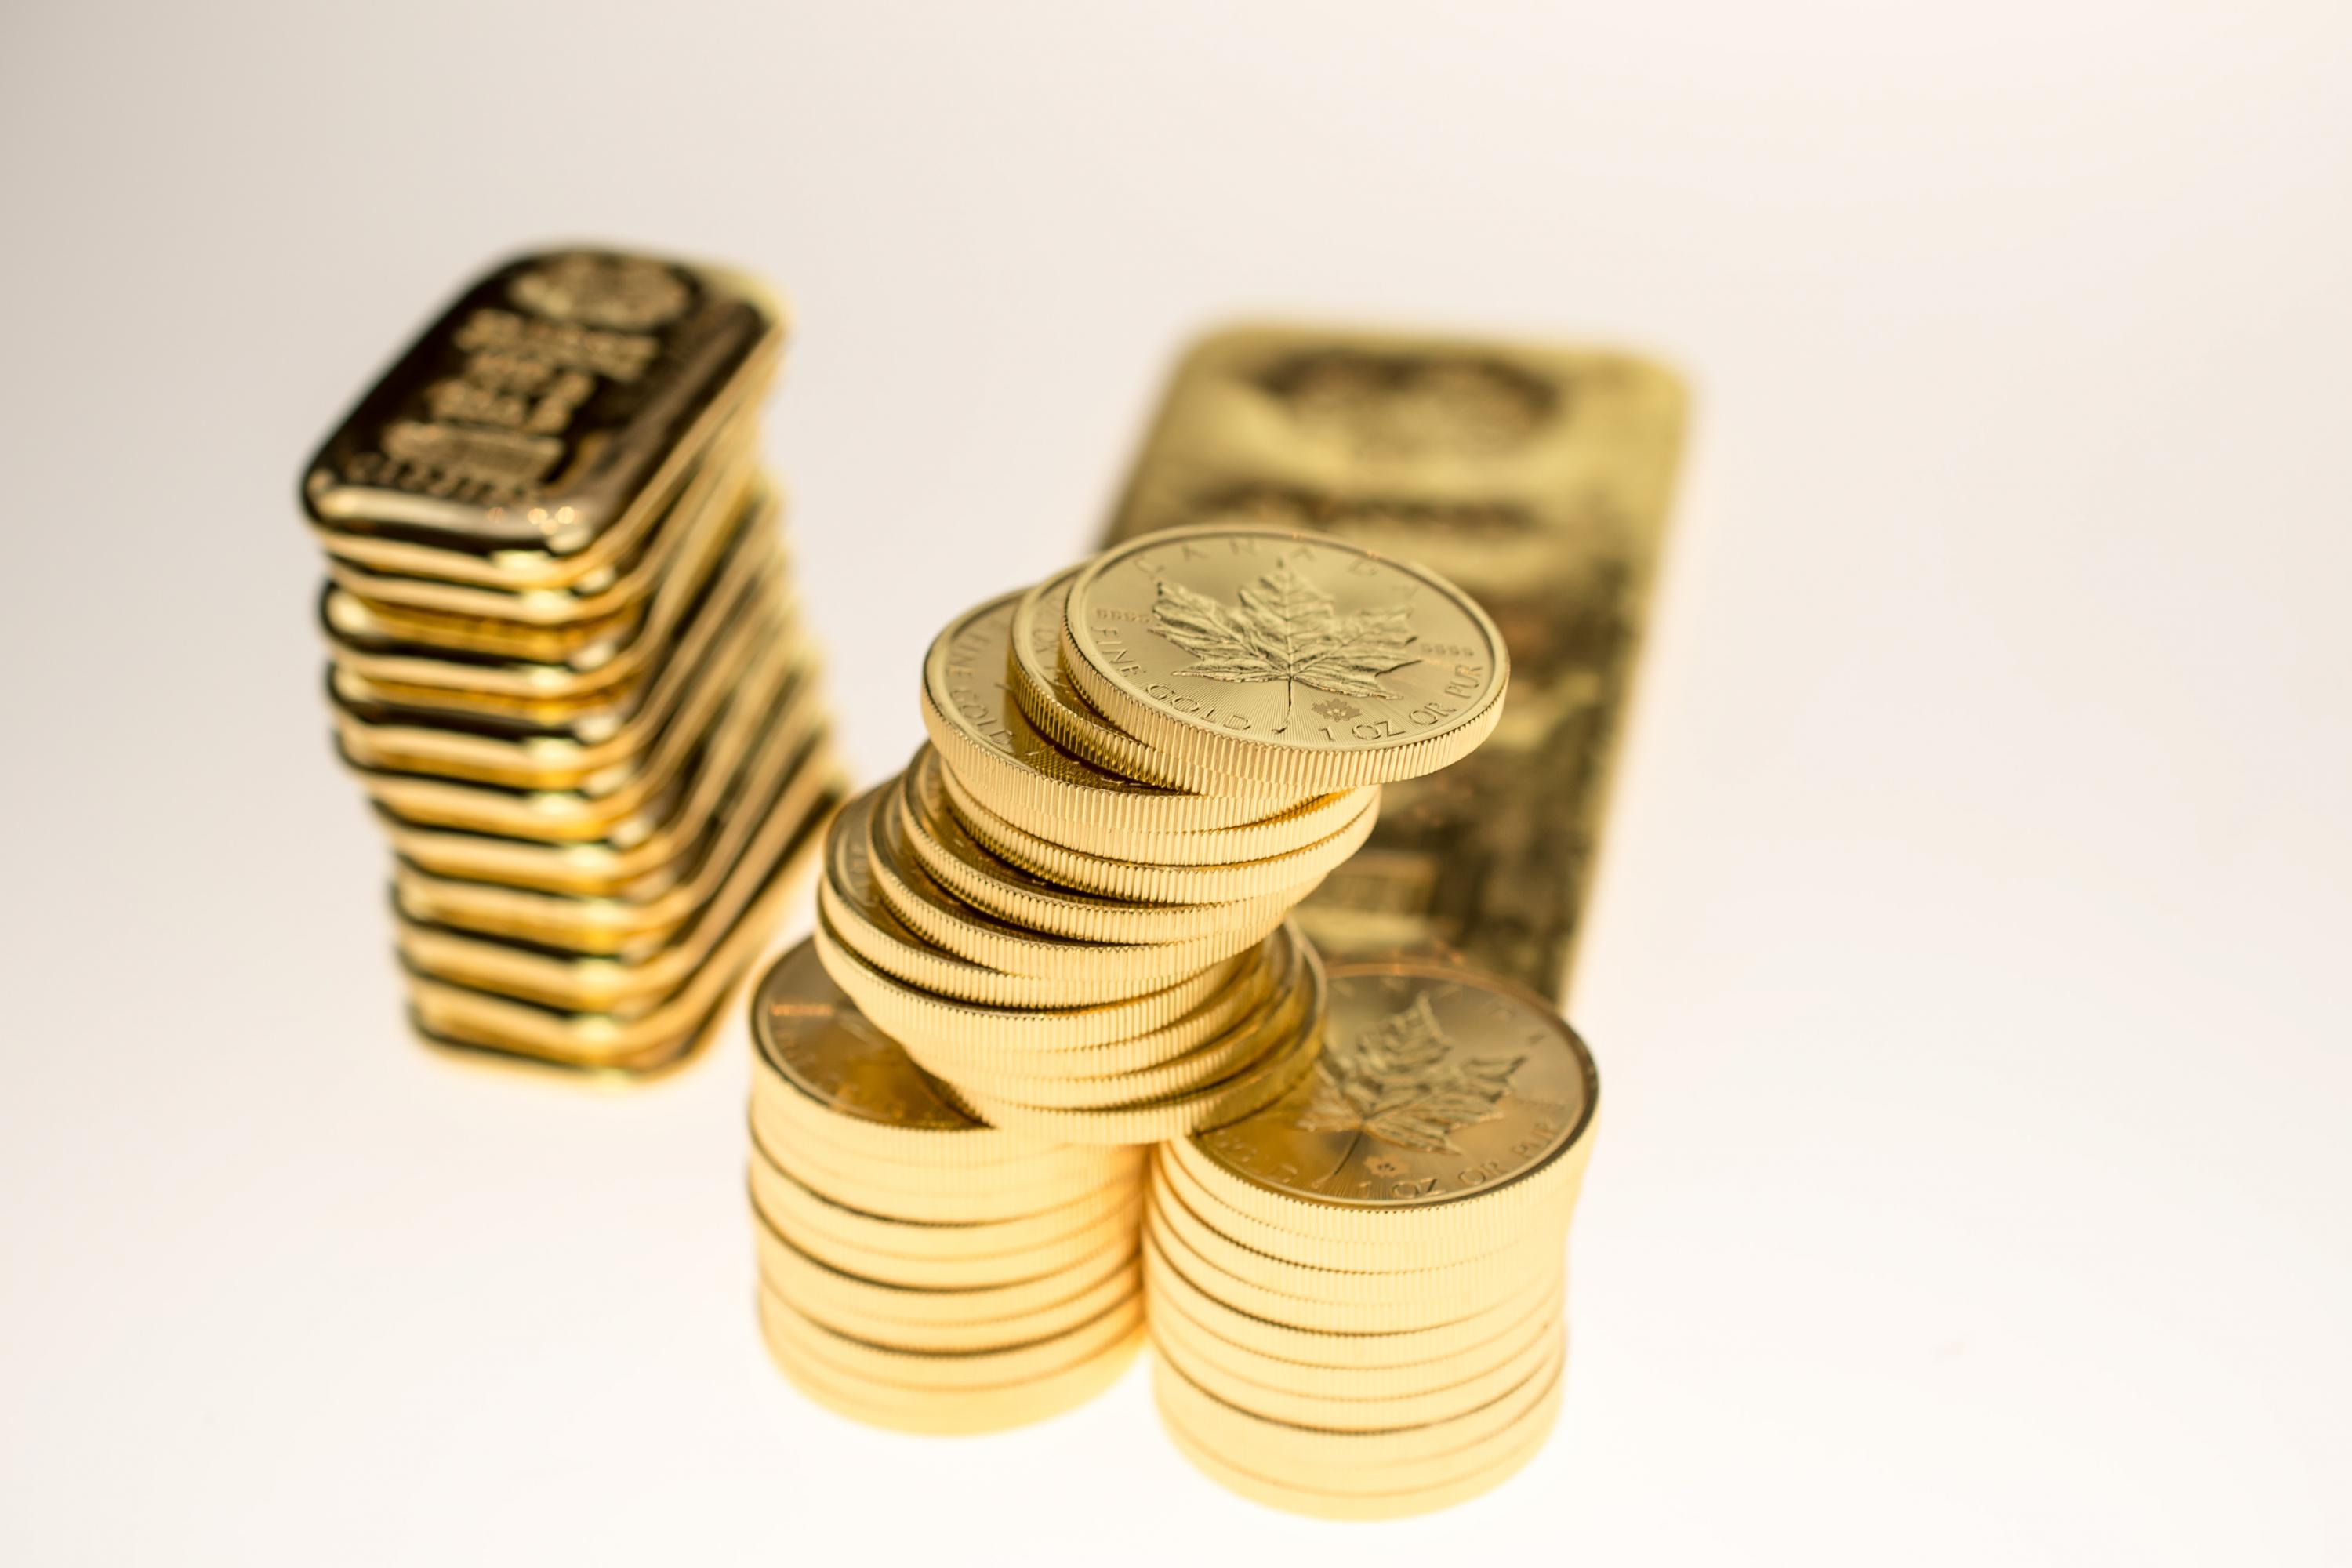 Golden Stockpiles - The Key to Gold as a Store of Value and Safe Haven